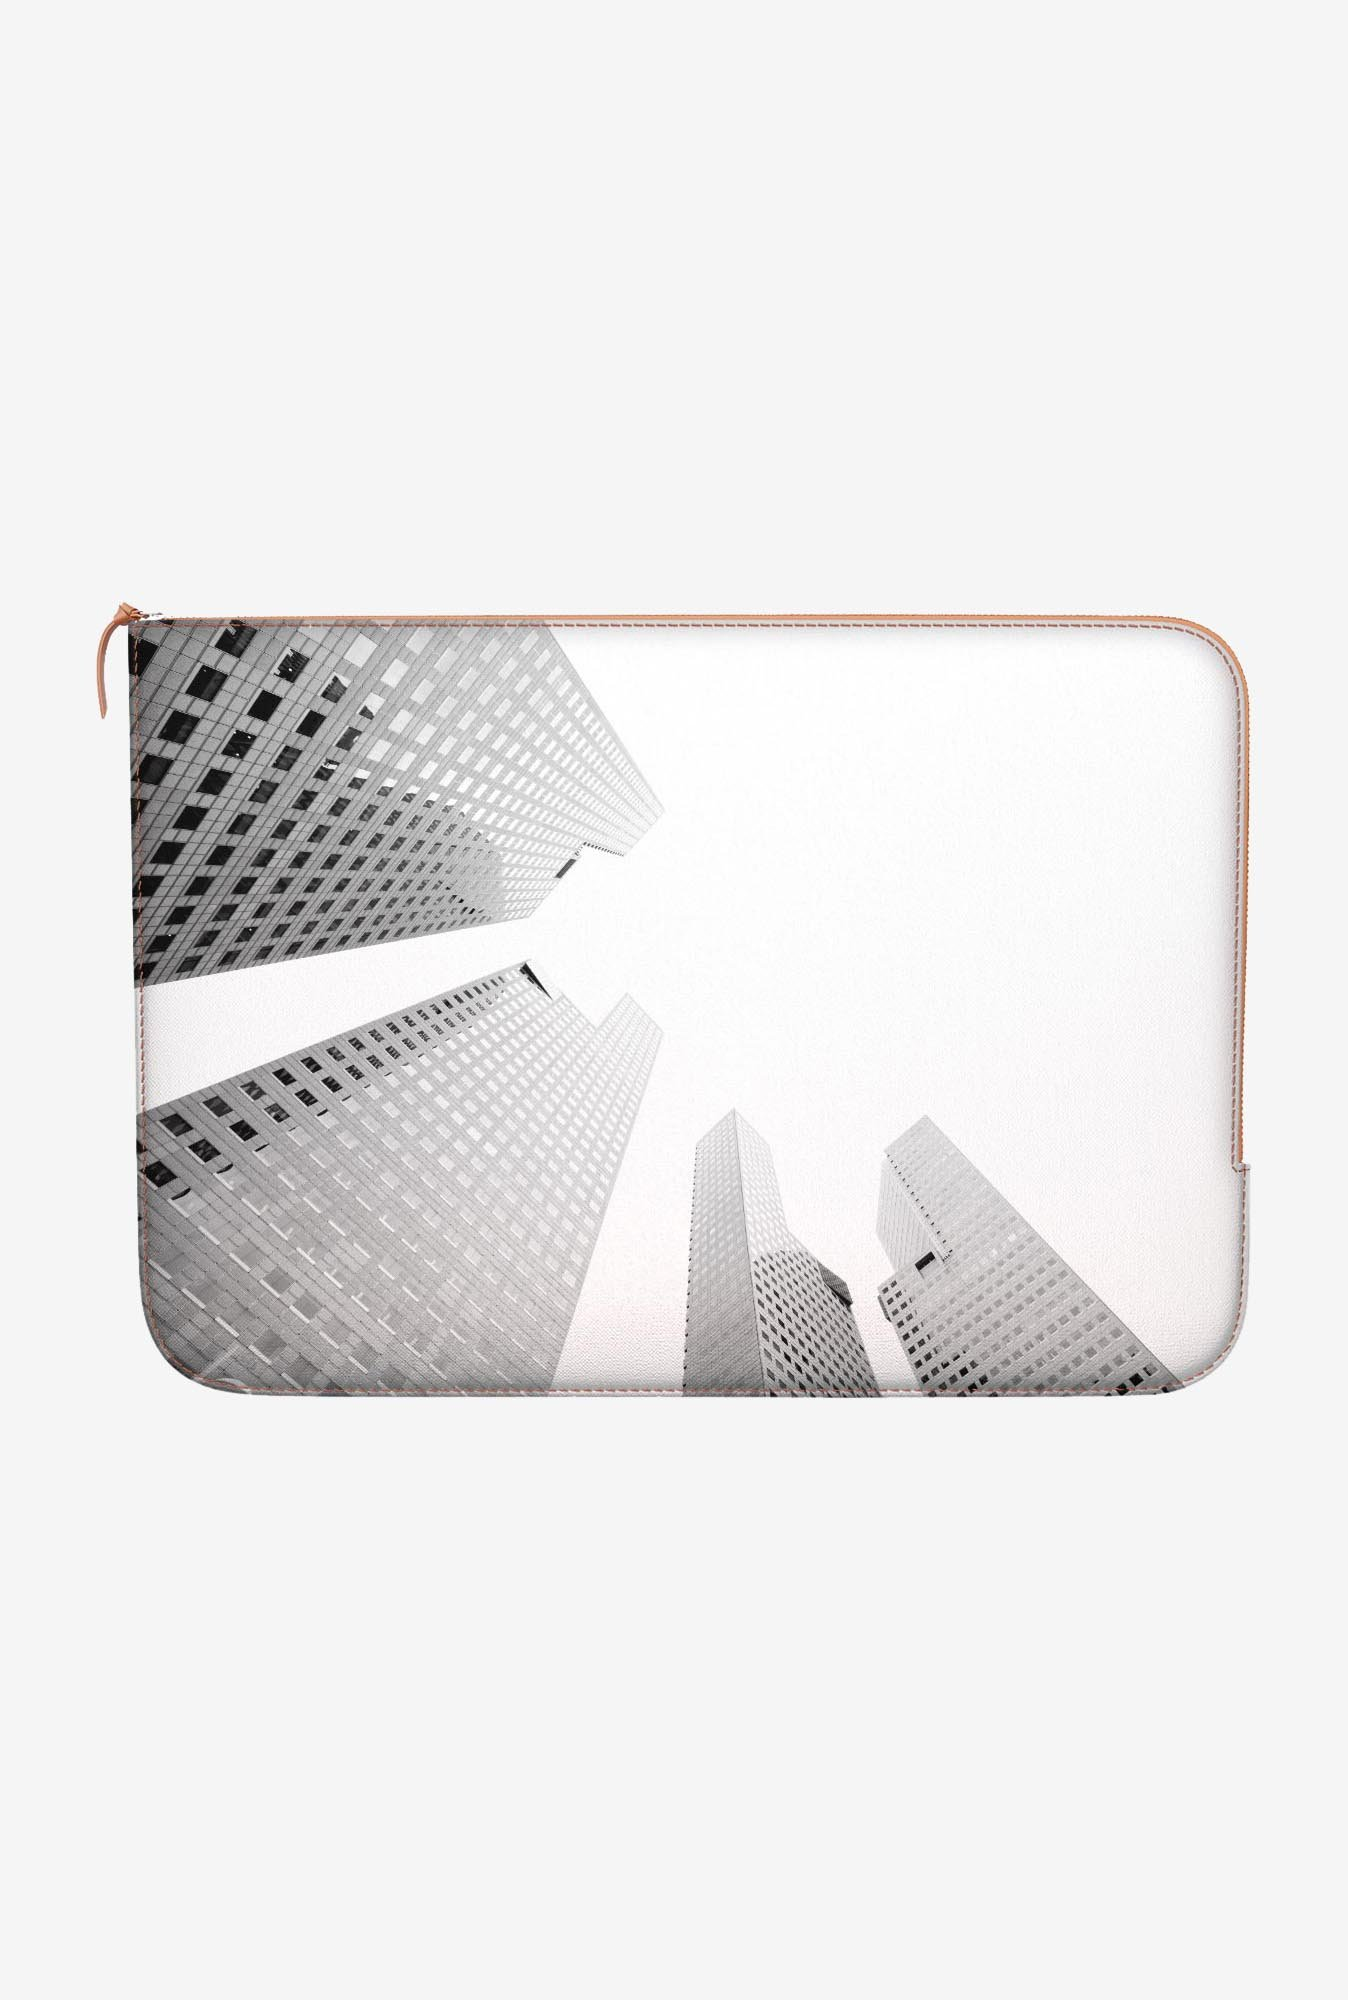 "DailyObjects Reach For Sky Macbook Air 11"" Zippered Sleeve"